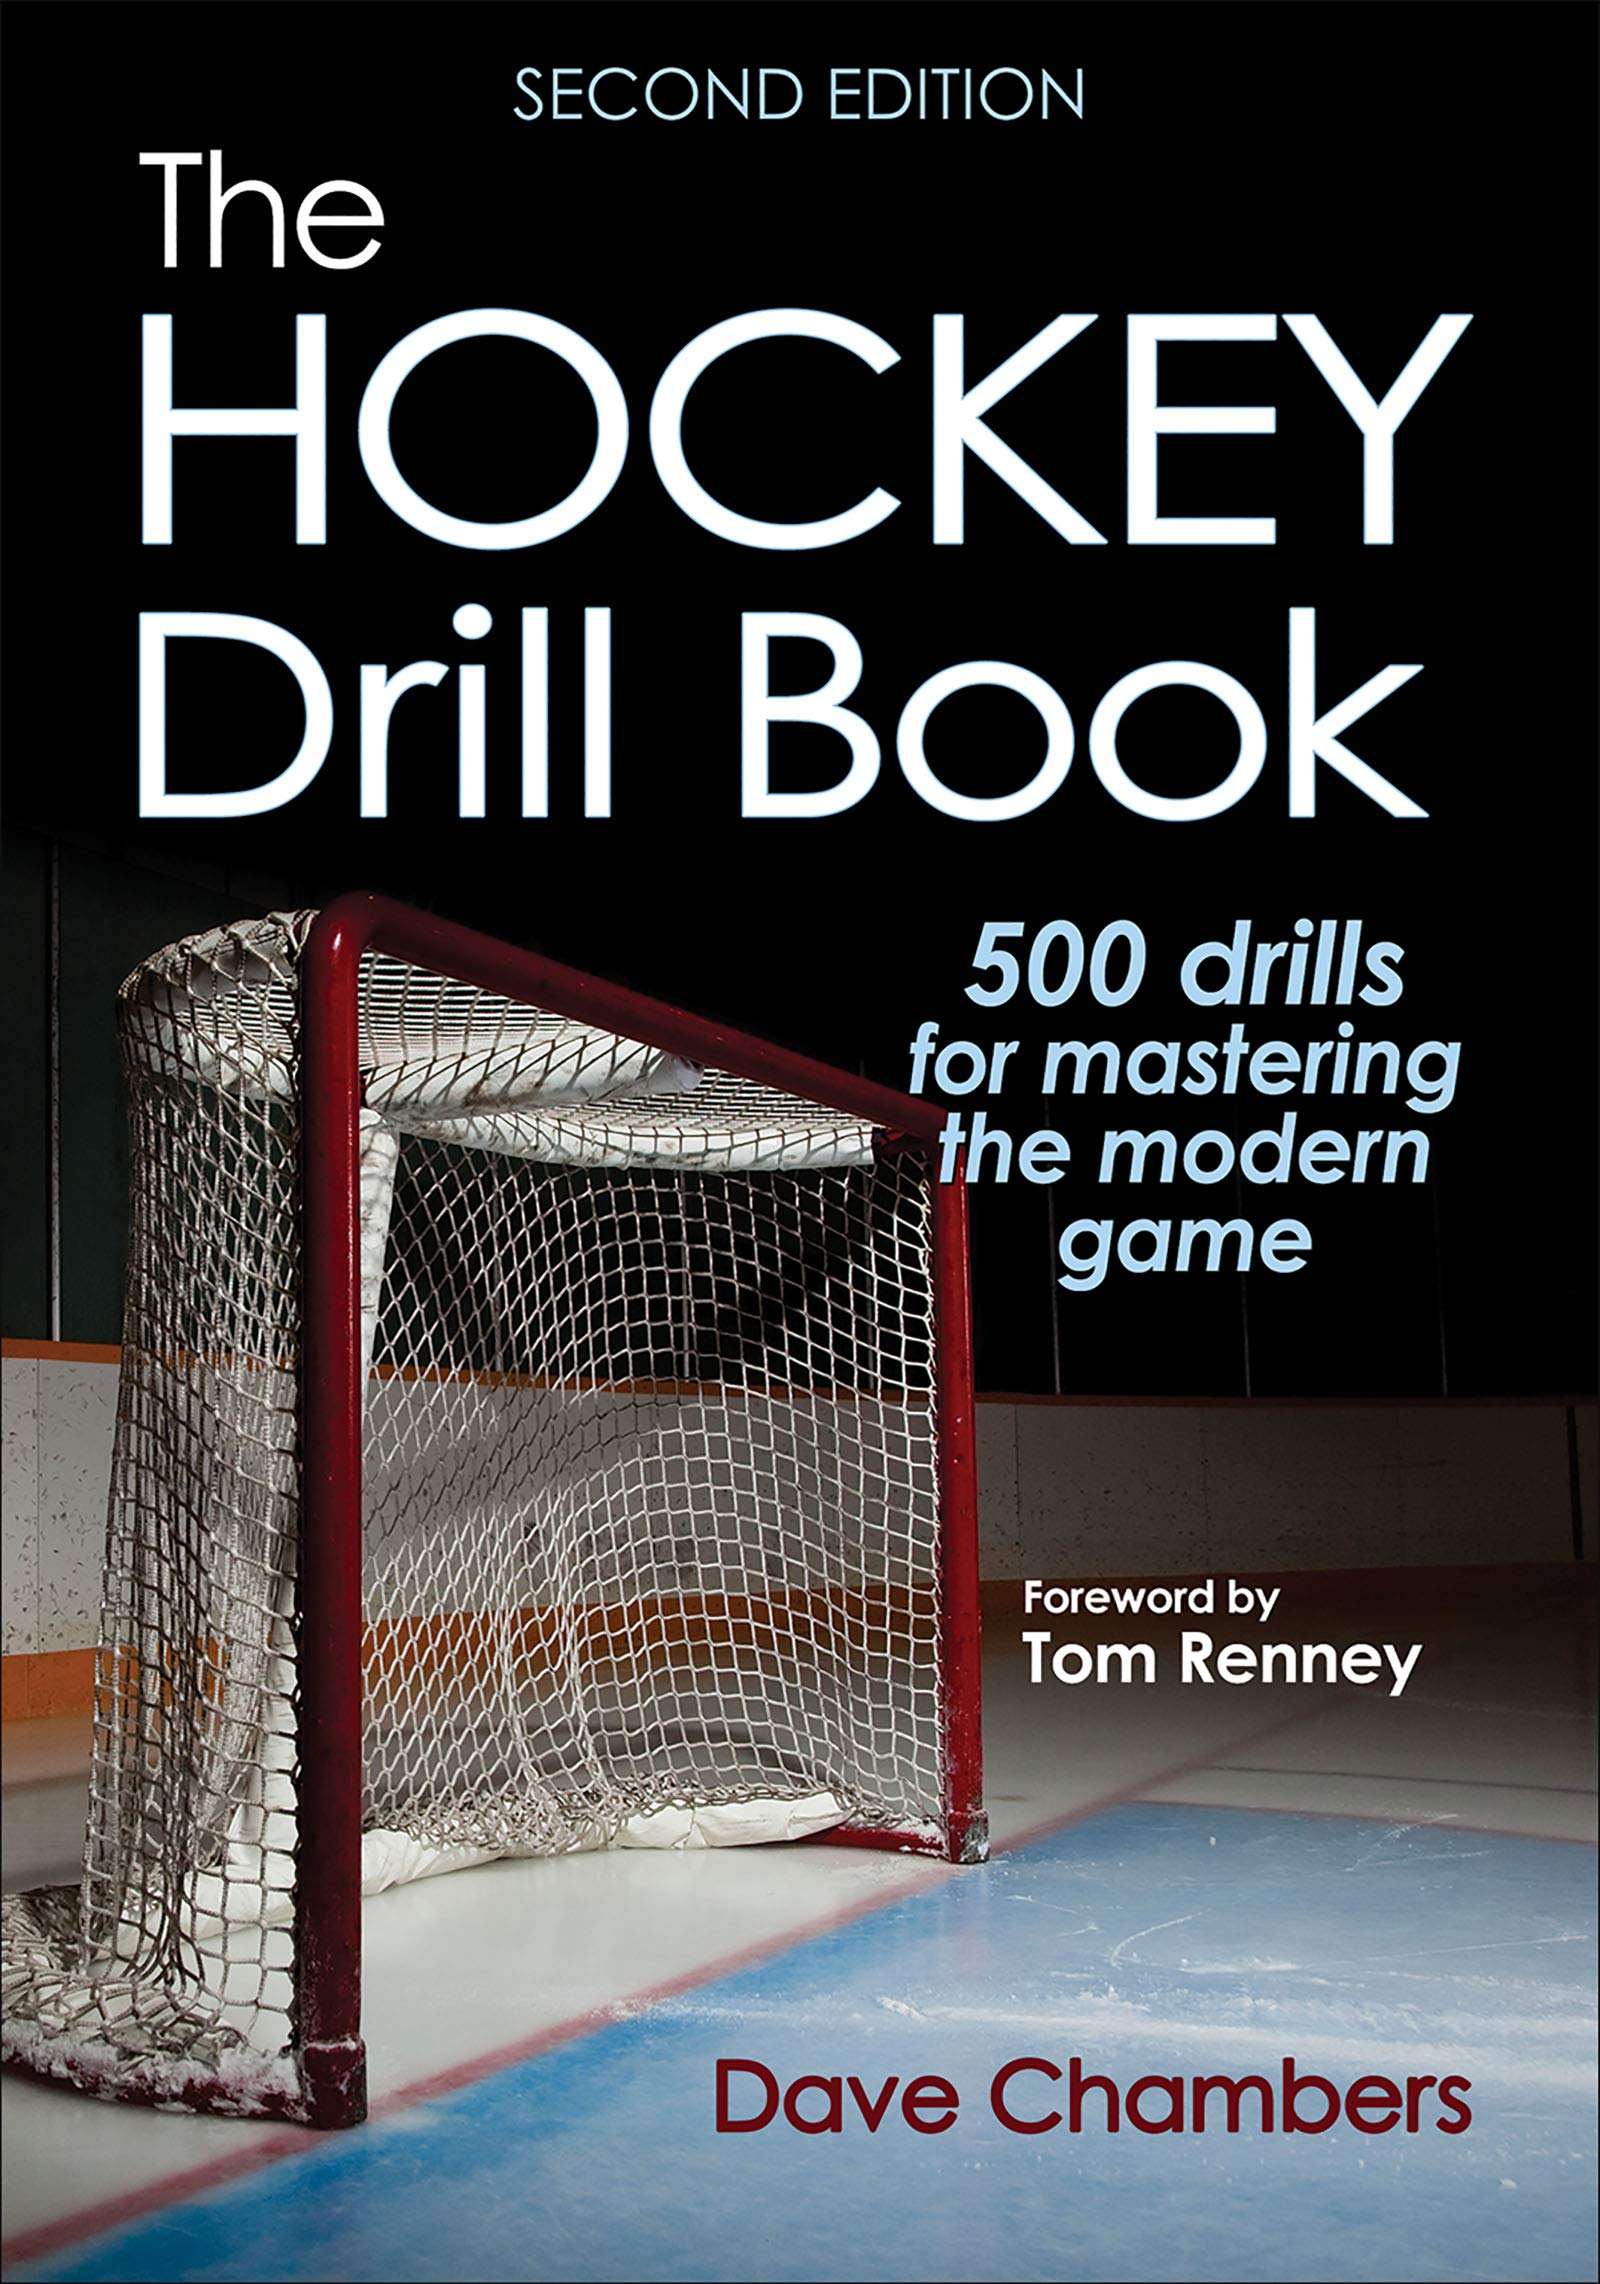 The Hockey Drill Book 2nd Edition Paperback – August 15, 2016